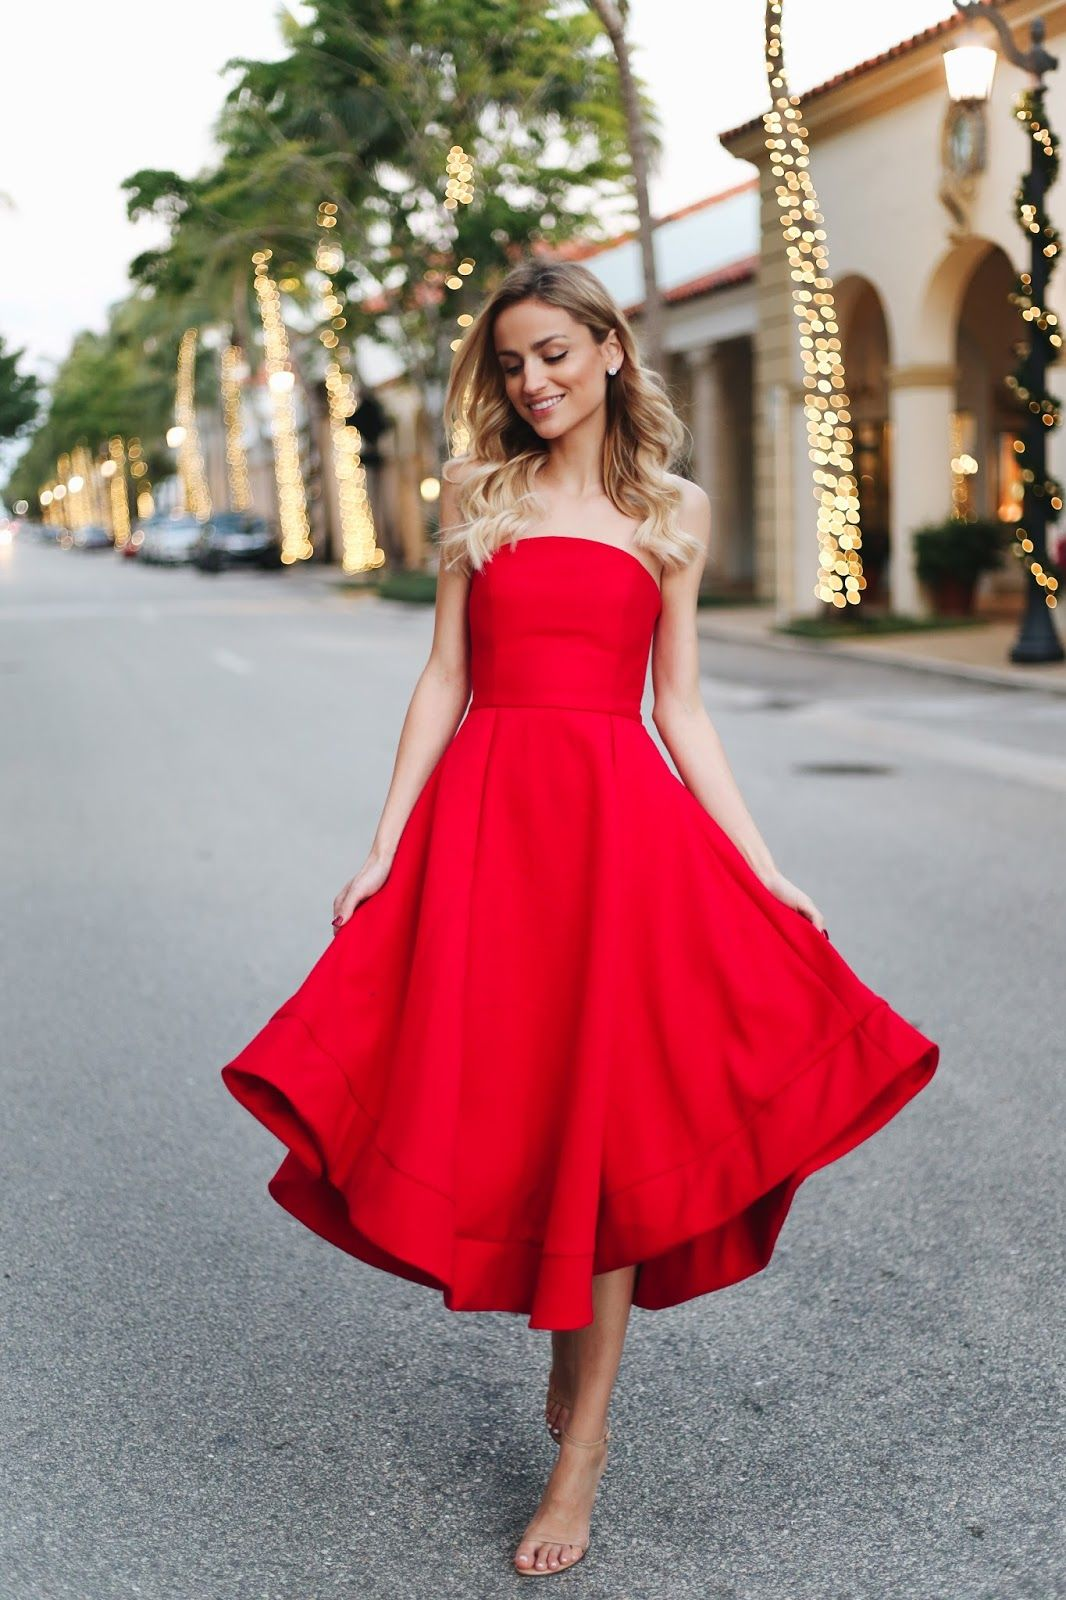 Perfect Holiday Dress. Red strapless midi dress+nude ankle strap heeled  sandals+earrings. Christmas Semi Formal Dinner  Party   Event Outfit 2017 c5cf57a750